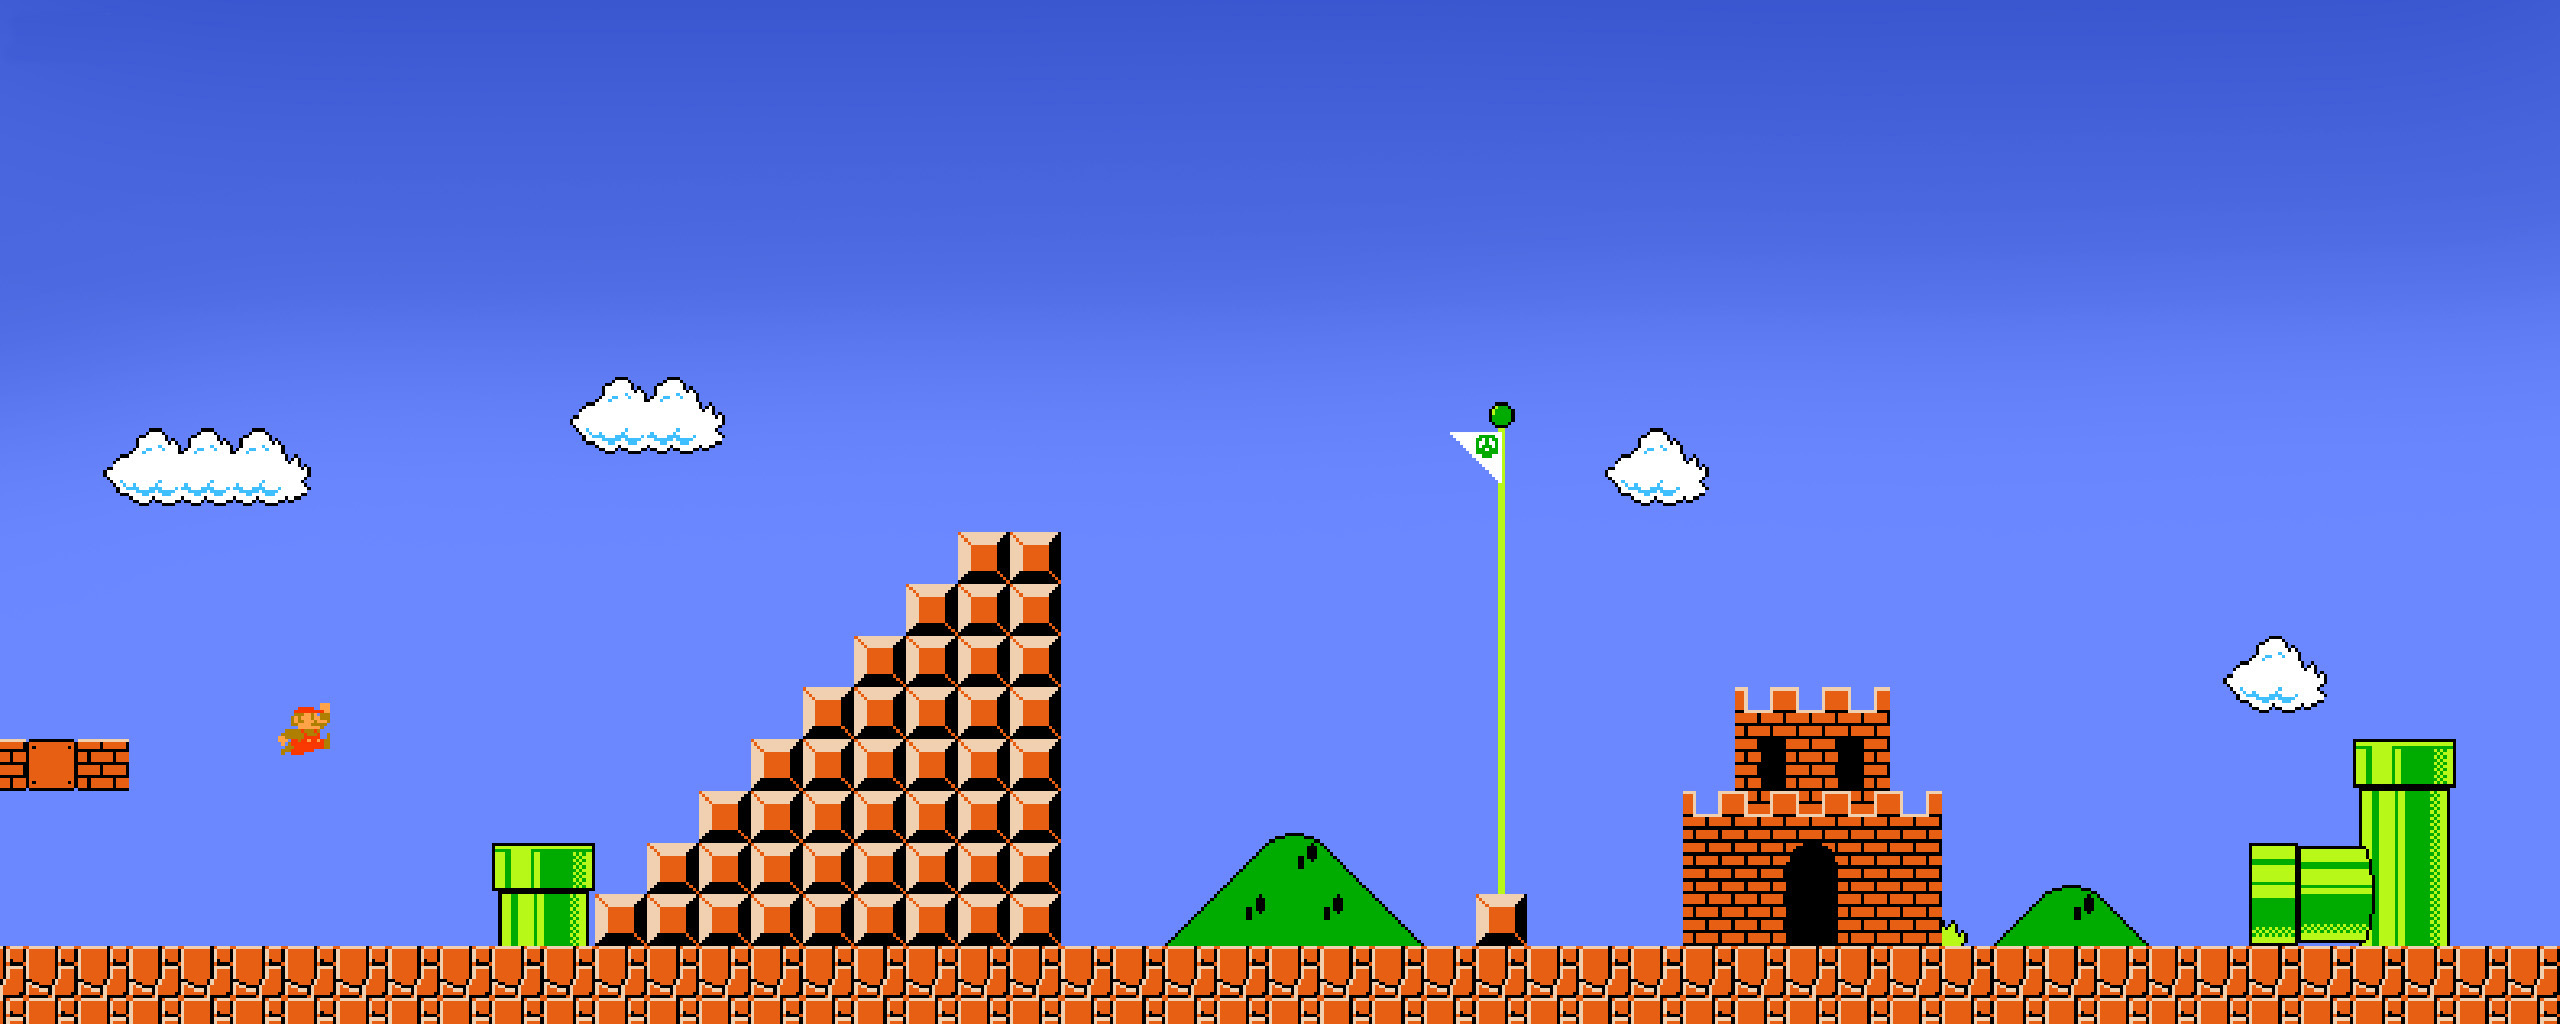 Mario bros background - SF Wallpaper